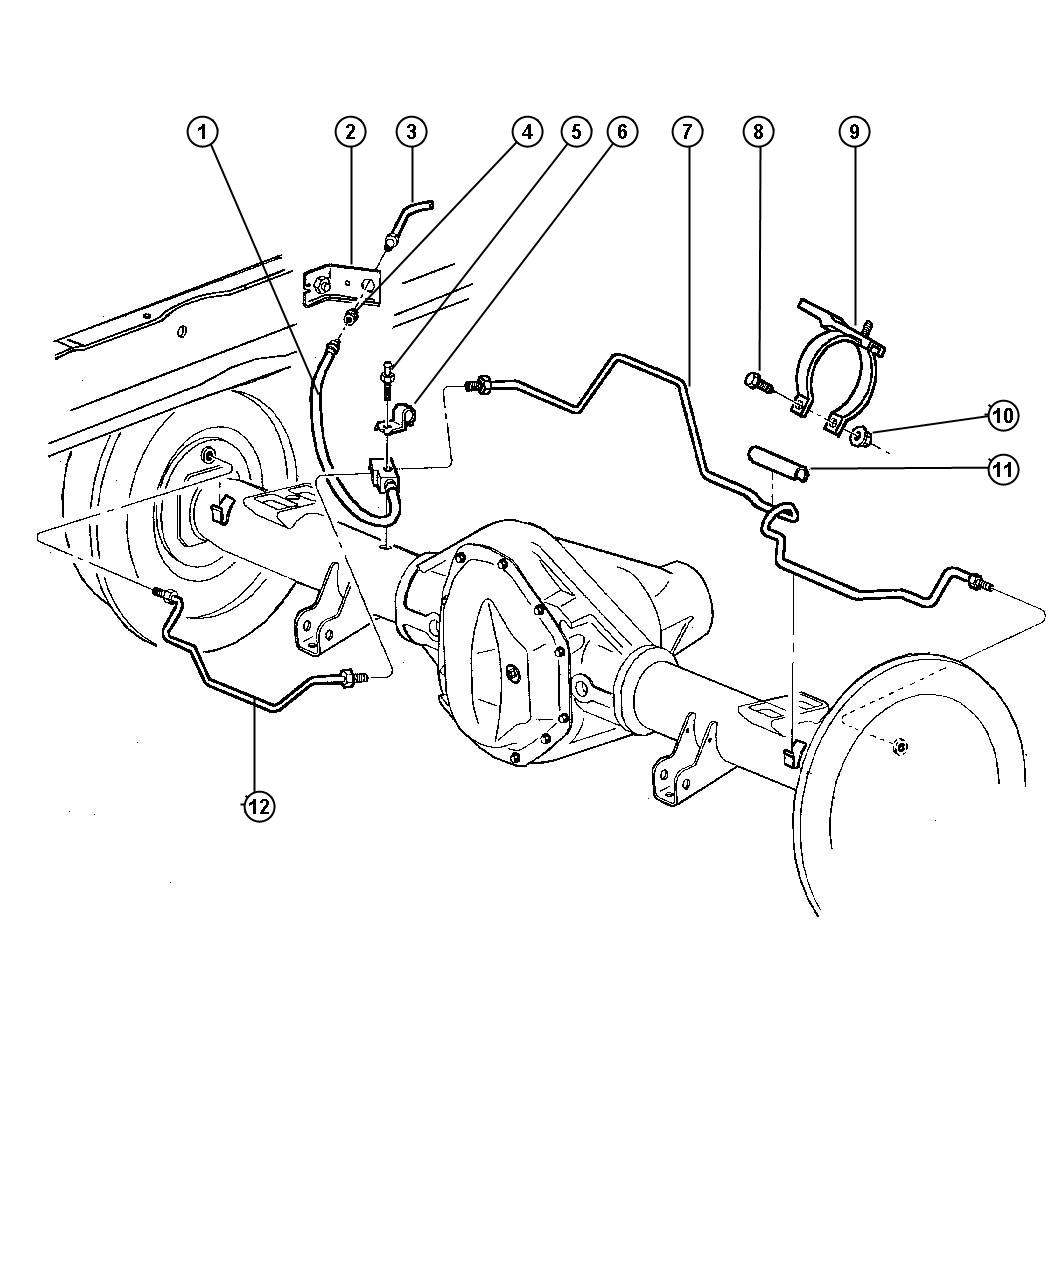 89 Ford E 350 Wiring Diagrams besides Duramax Exhaust Diagram in addition Nissan Sentra 2007 Engine Diagram besides Page3 together with Adam E2 80 99s Service Tip 3a Service Stabilitrak Message. on 2007 gmc sierra wiring diagram